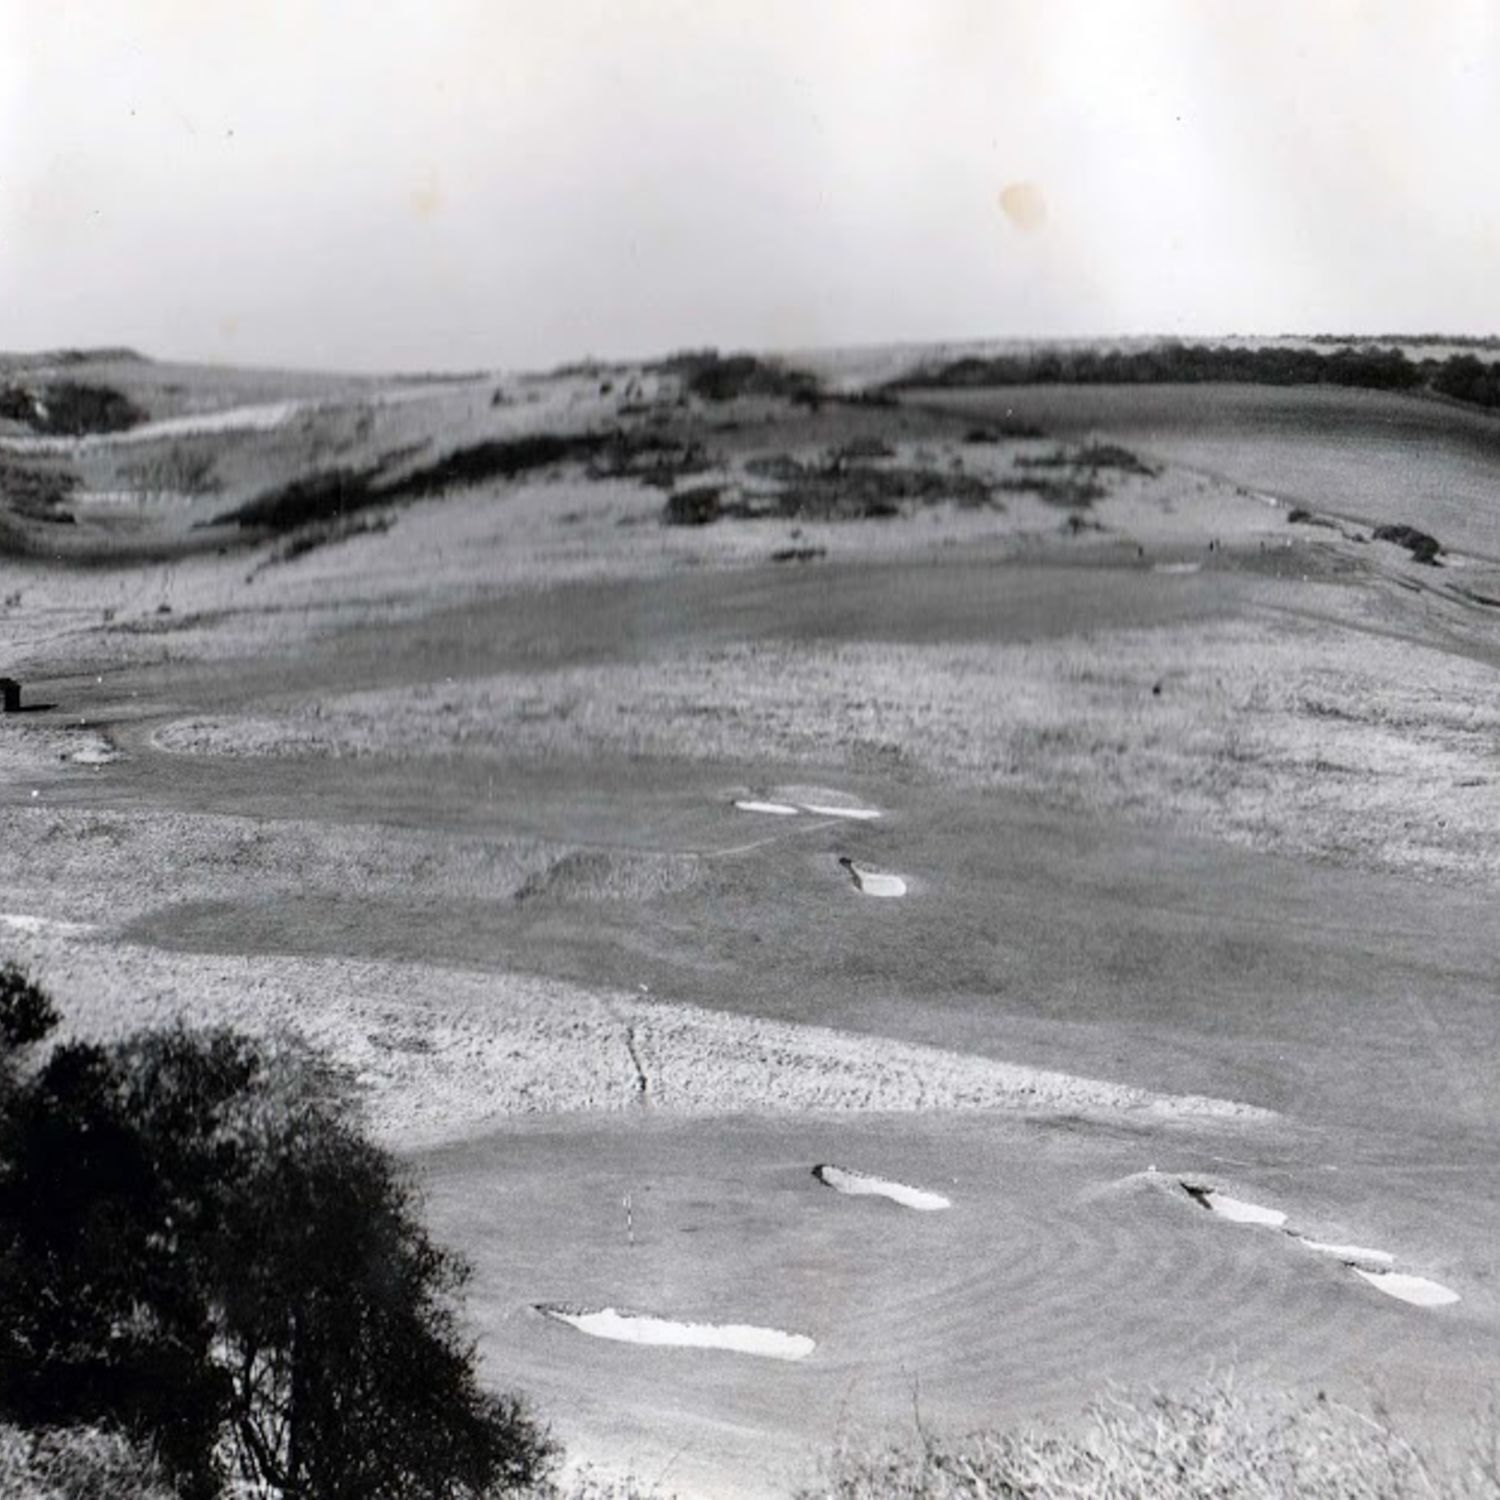 1947. Looking up the 11th lower with the 6th & 7th greens below